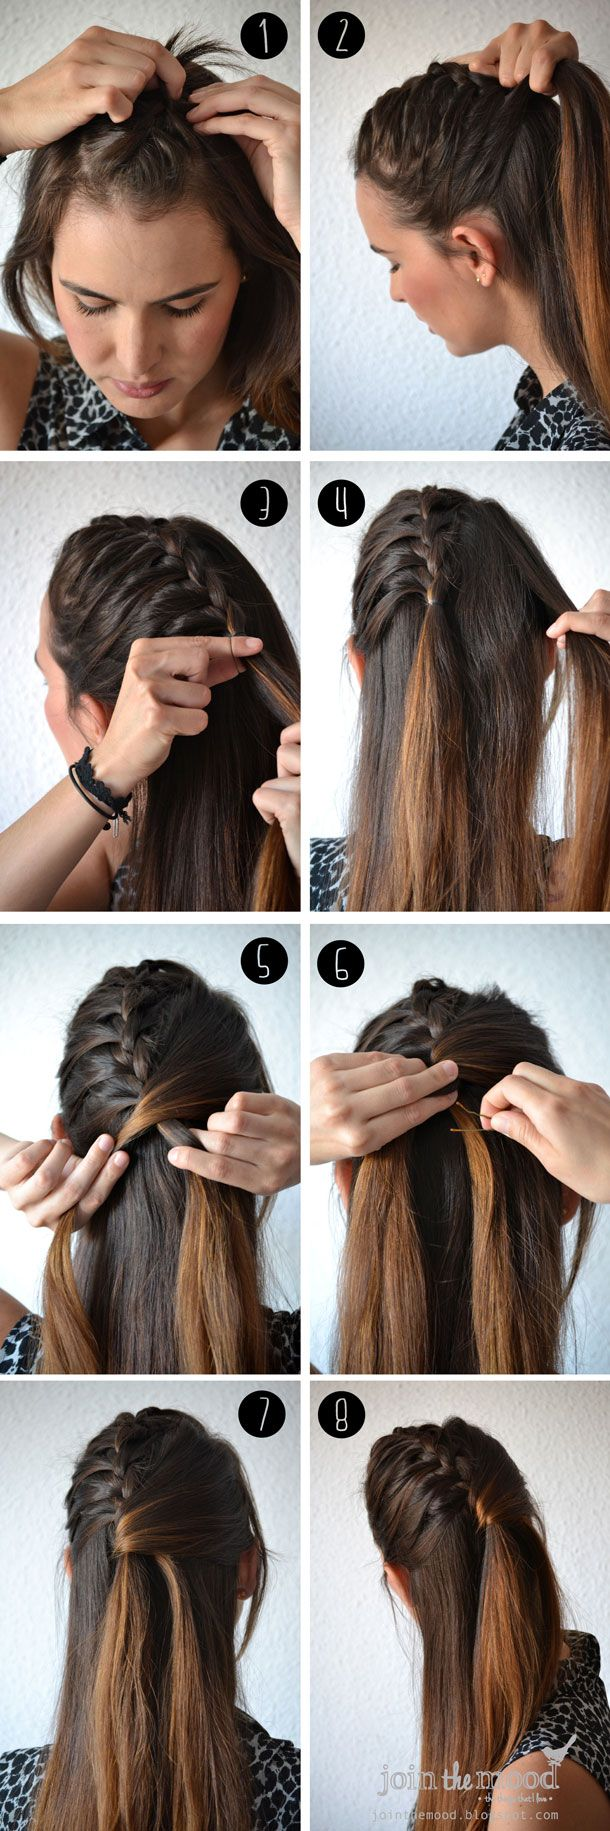 Hello ... Today I want to show you this hairstyle that is very easy to do. The result is very nice and for those with short hair also works...